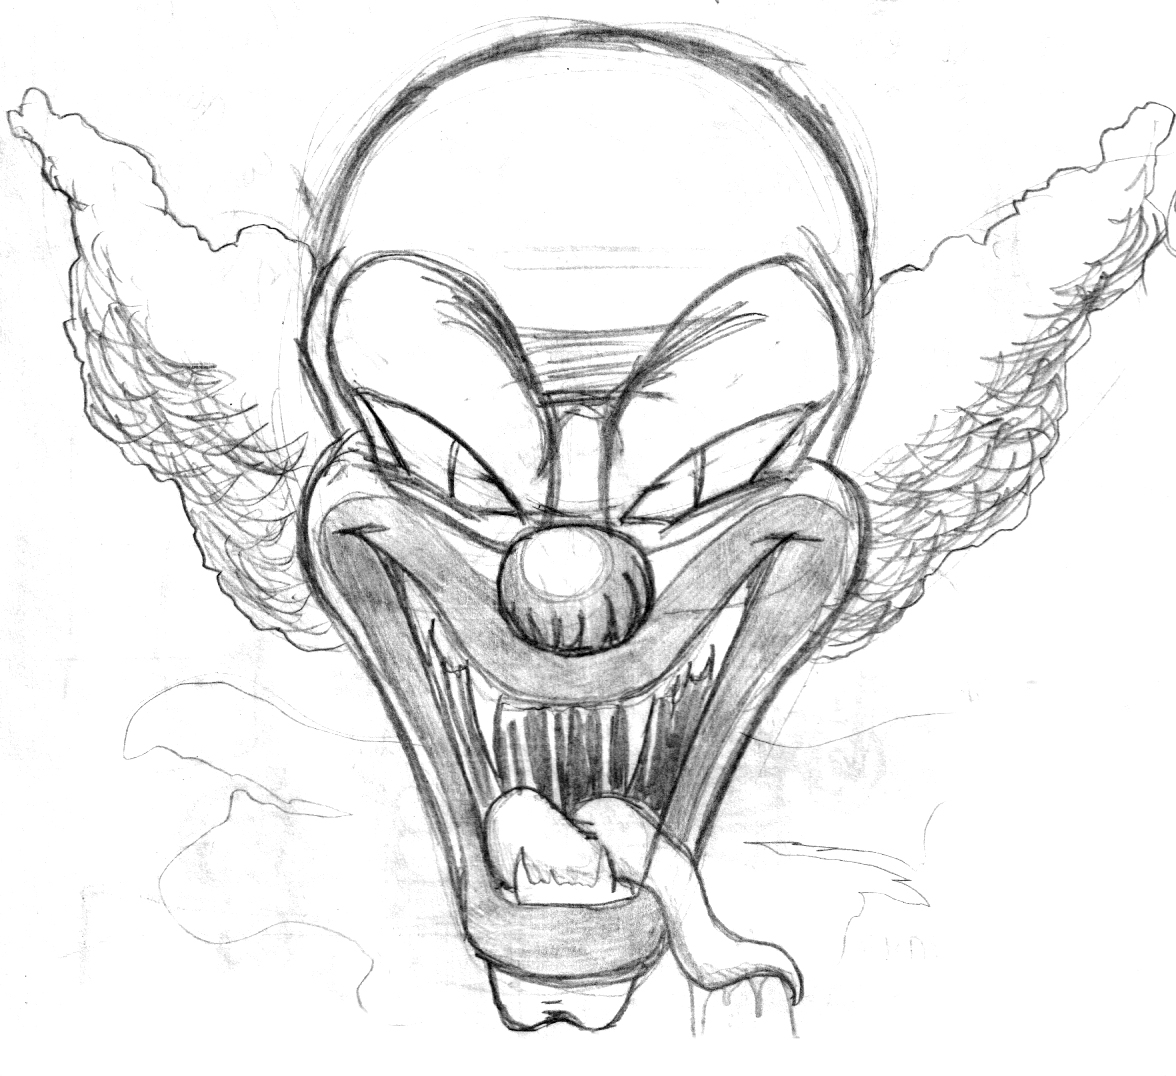 1176x1076 Drawings Of Clowns Scary Clown Pencil Drawings Evil 3 By Colo